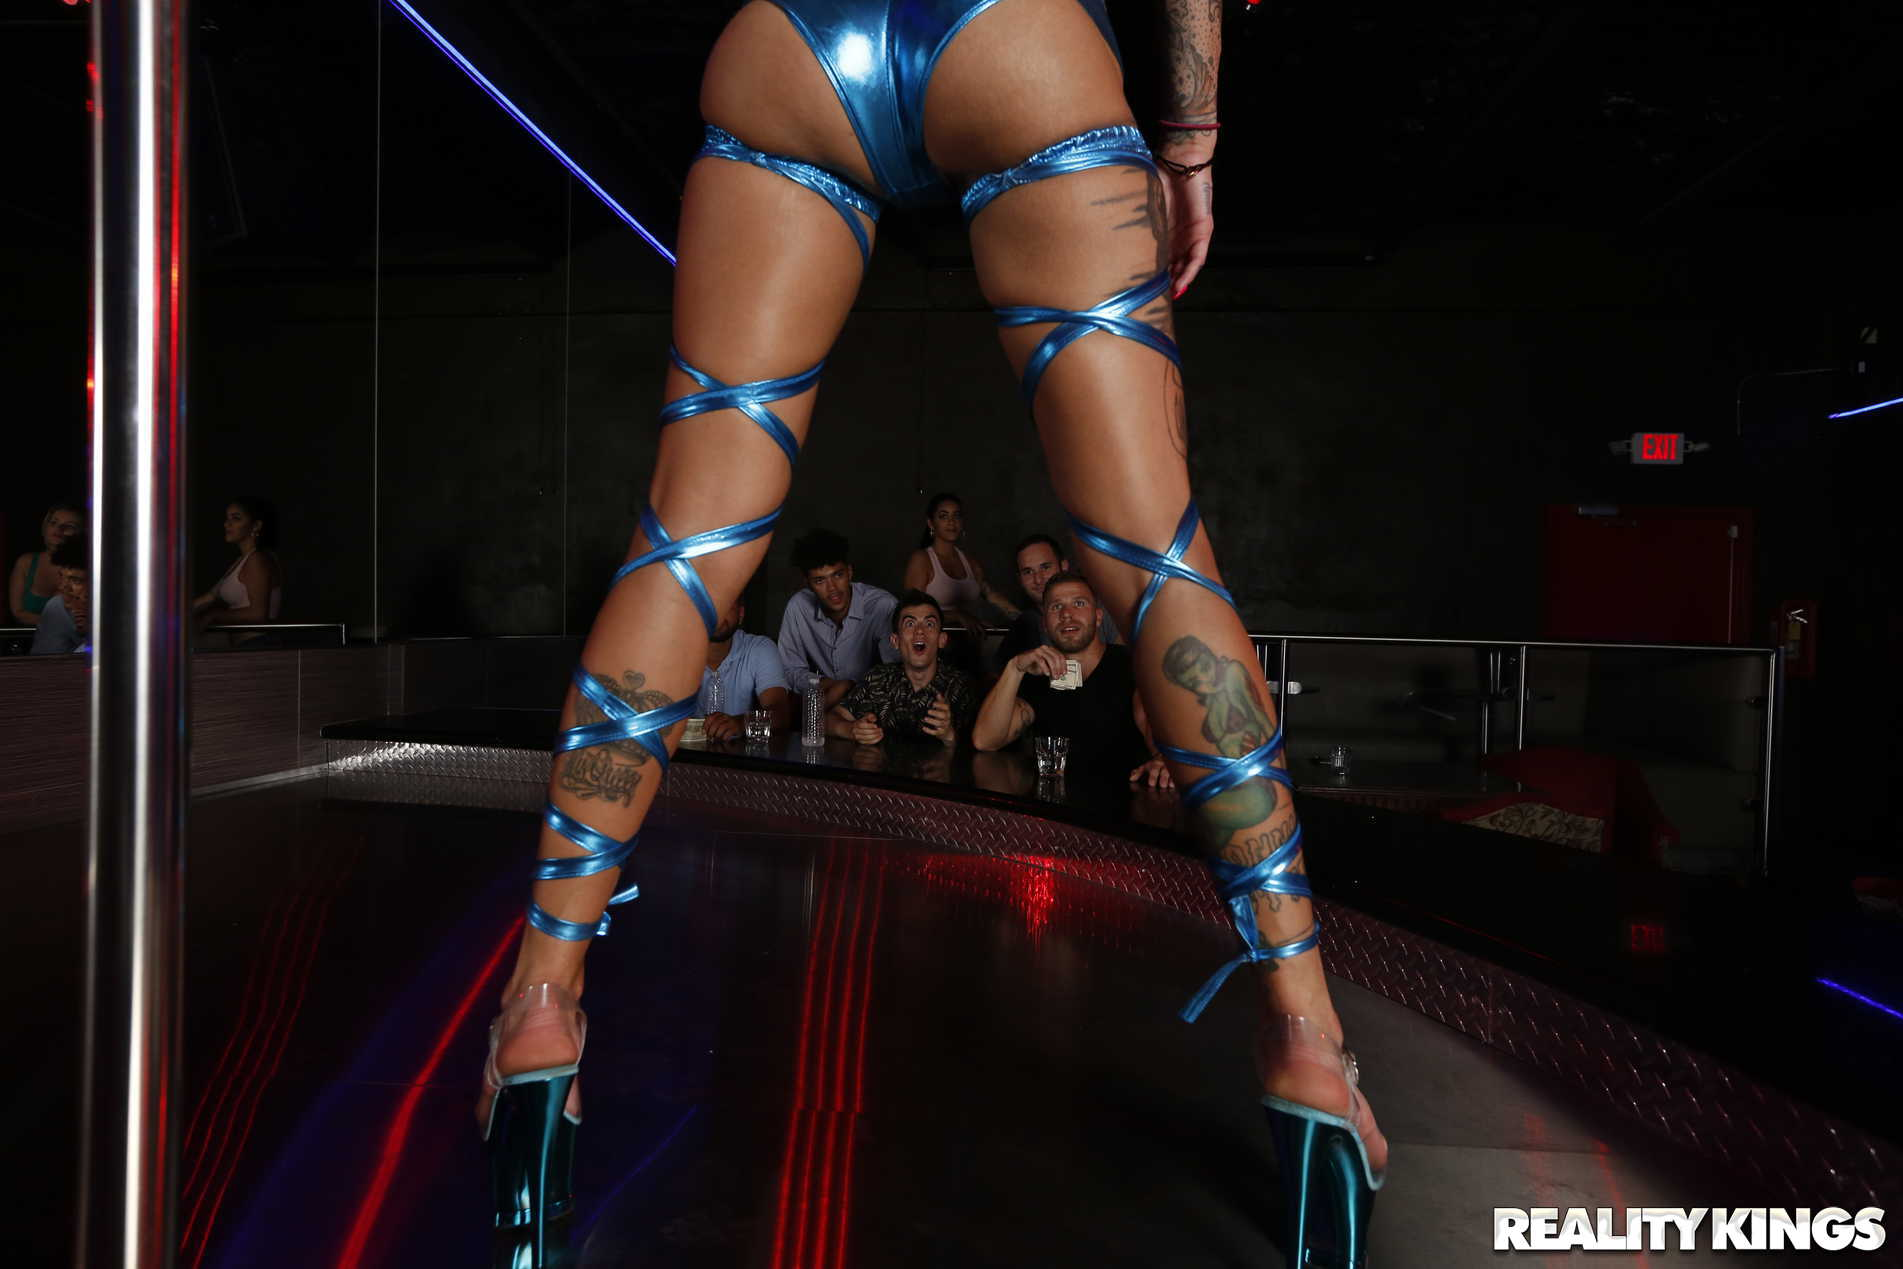 Reality Kings 'Rotten Experience At The Strip Club' starring Bonnie Rotten (Photo 84)